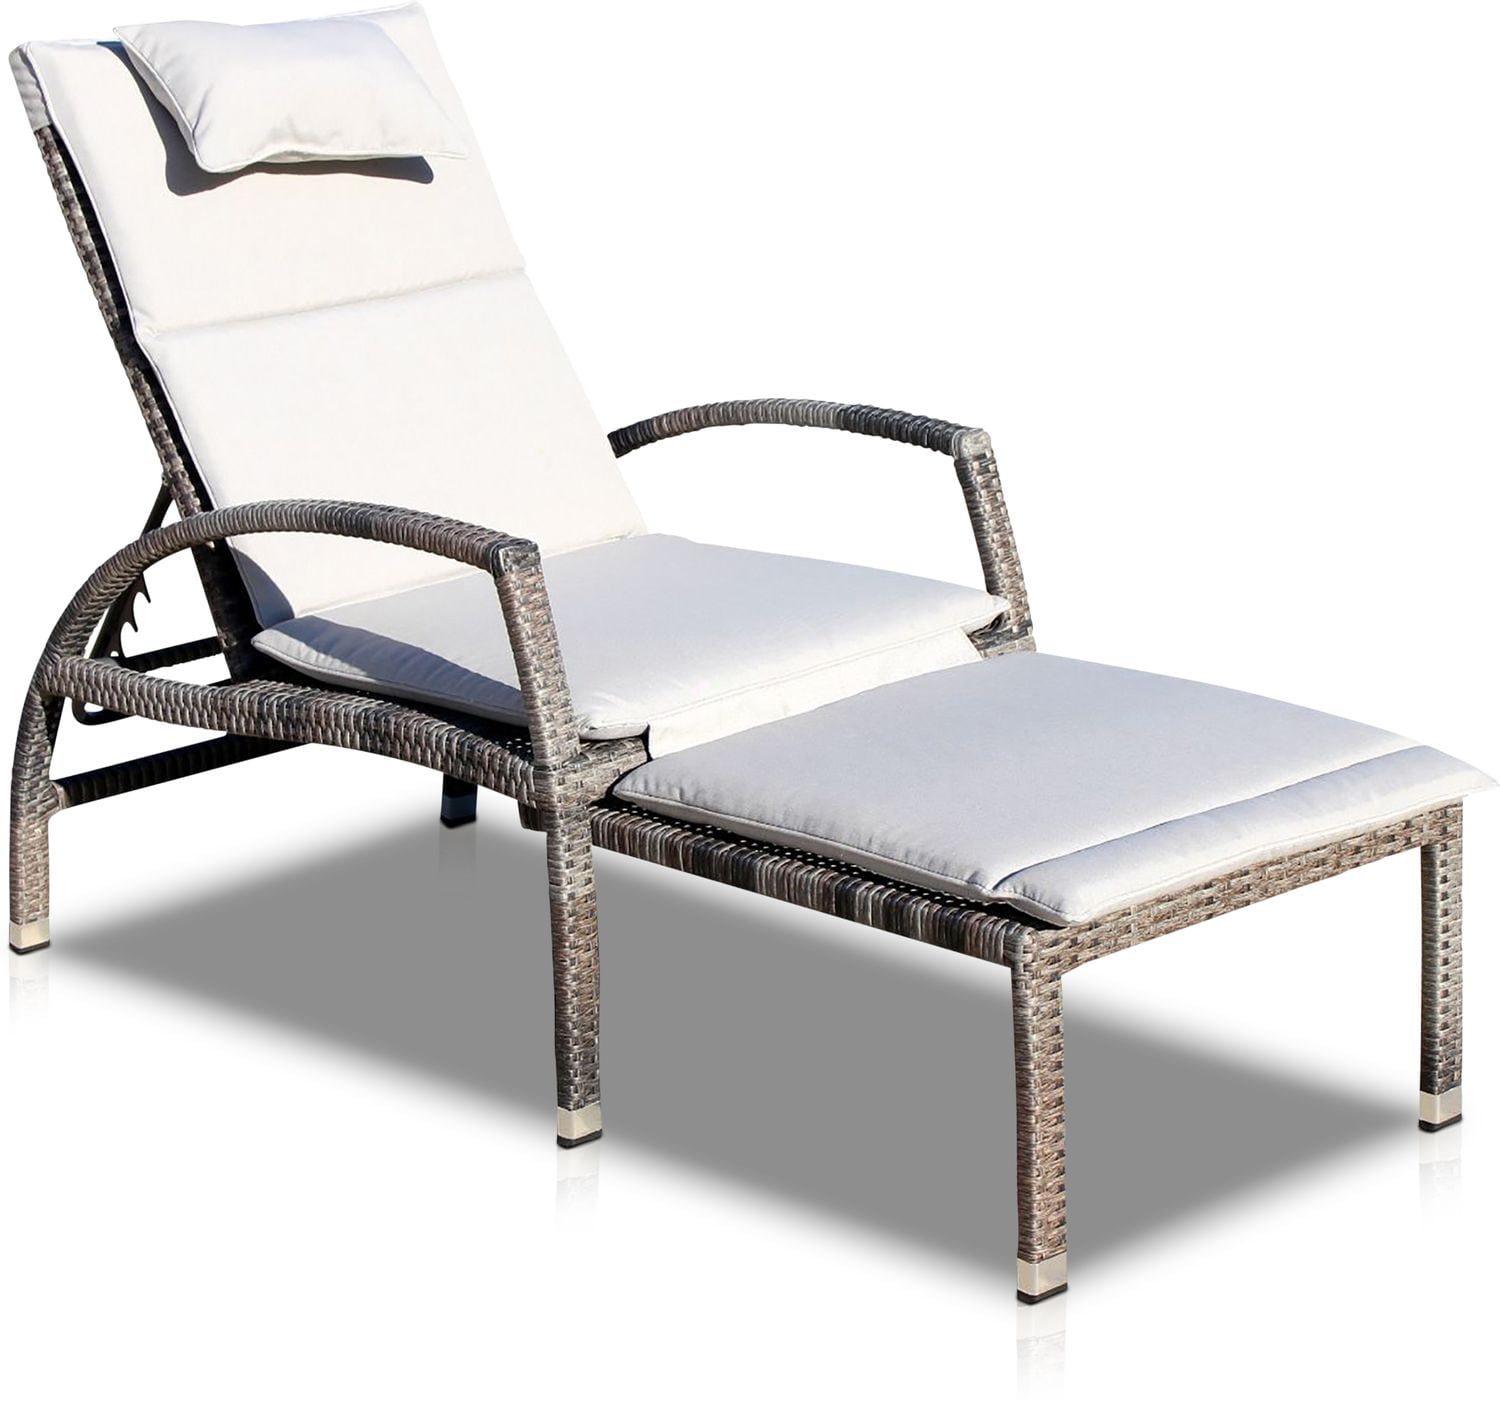 Outdoor Furniture - Jetty Outdoor Chaise Lounge